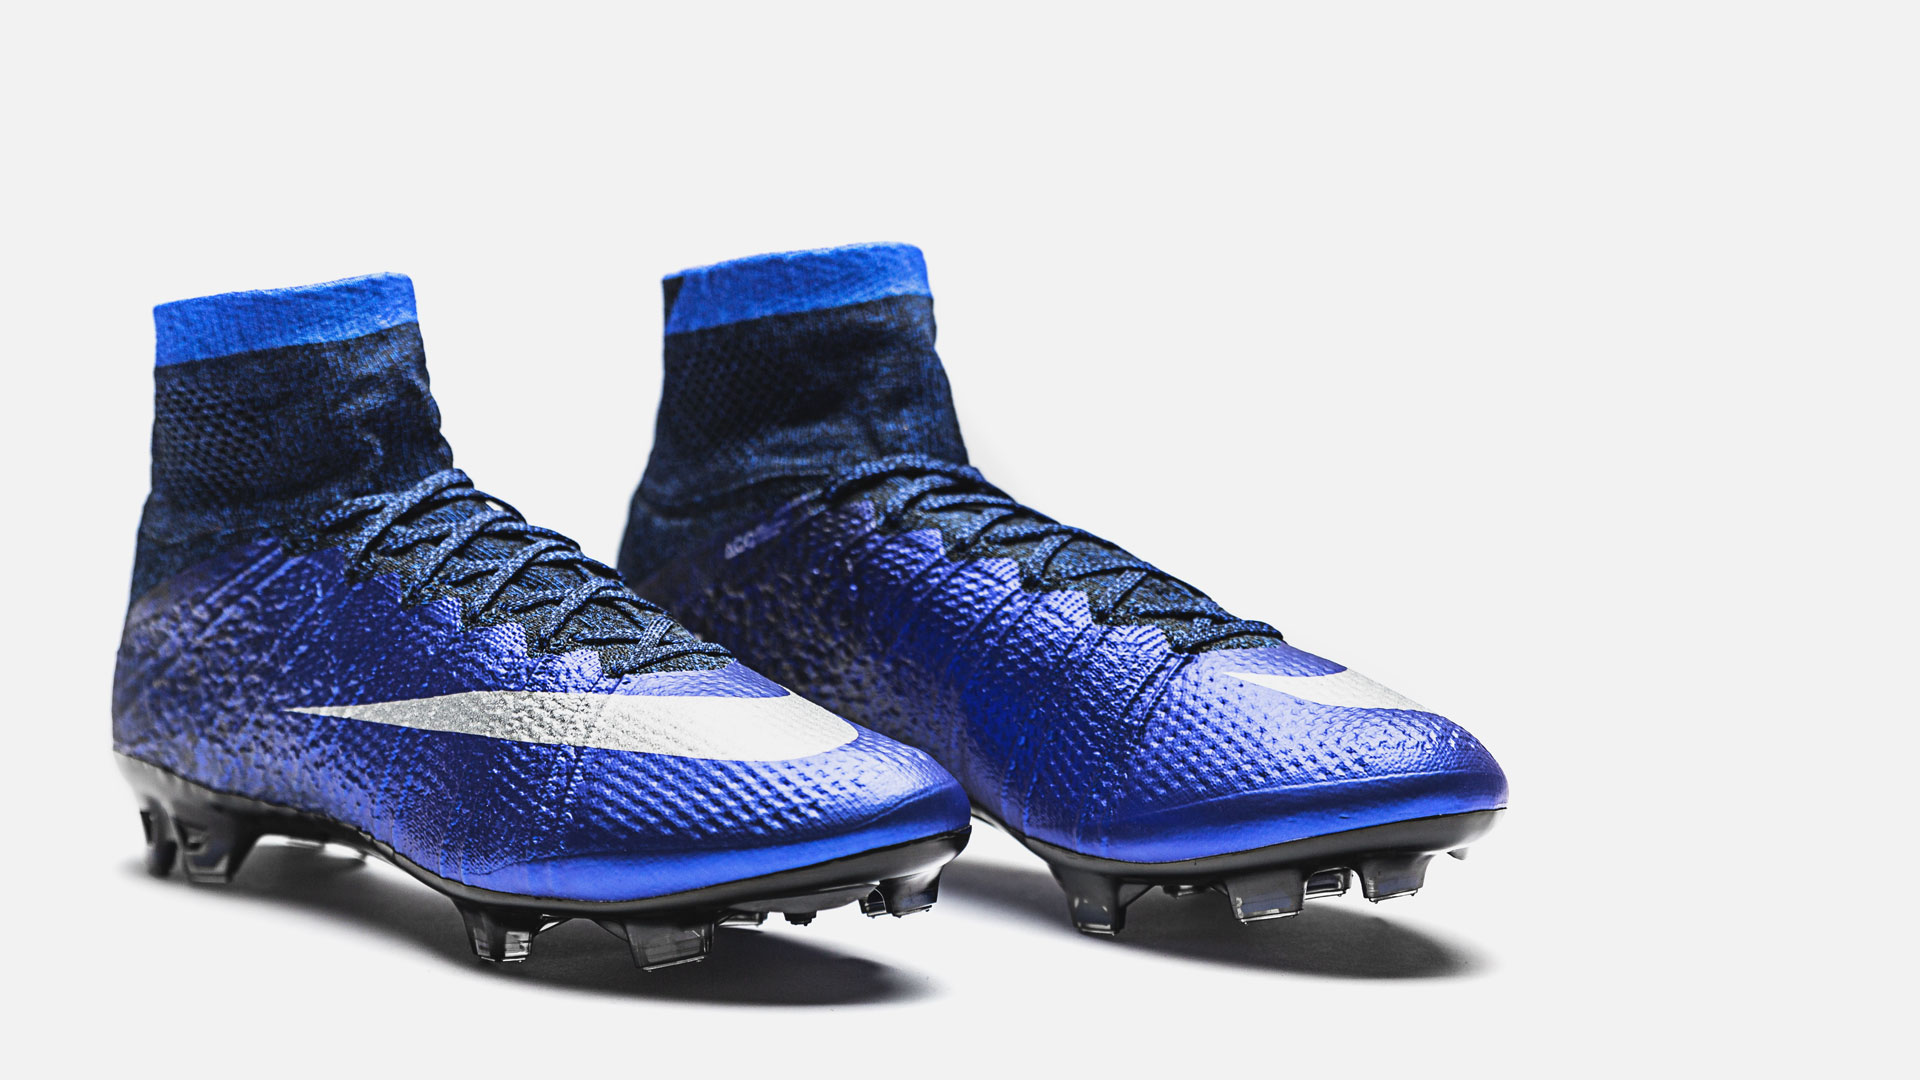 Cr7 Voetbalschoenen Cr7 Nike Mercurial Superfly Natural Diamond Voetbalschoenen